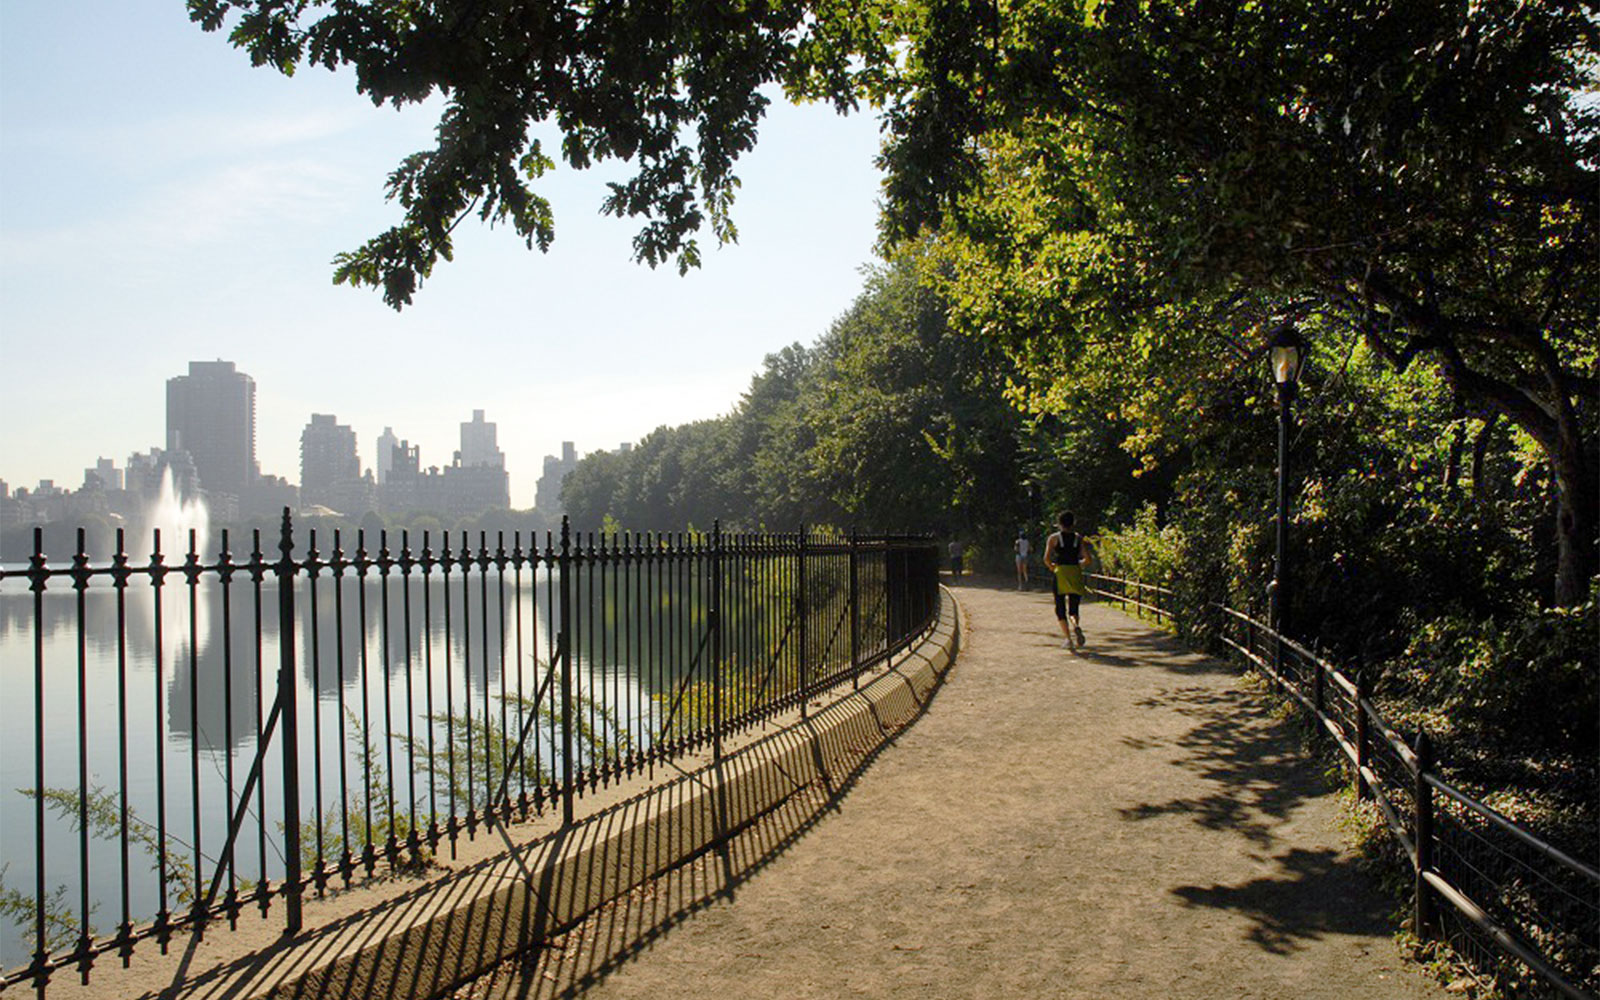 15 Destinations to Inspire Your Next Runner's High: NYC